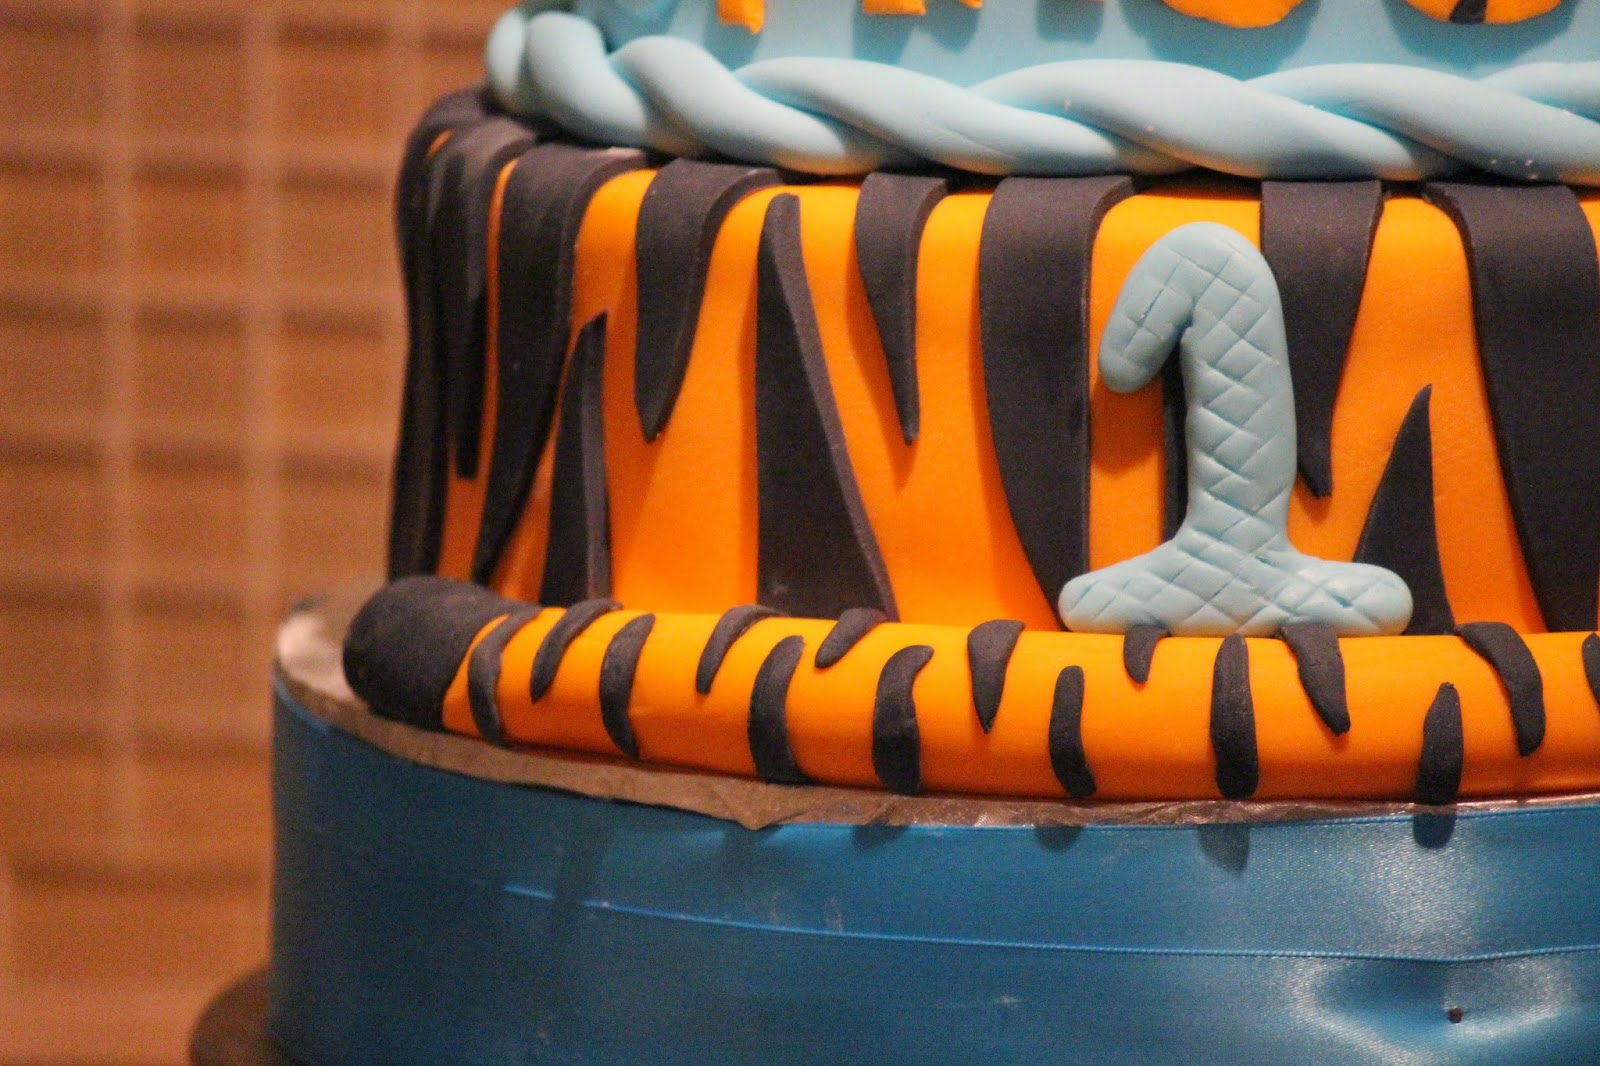 The Bottom Tier Is All Tiger Striped Complete With A Tail I Made Little Tigger Cake Topper Fondant He Even Has His Spiral To Bounce